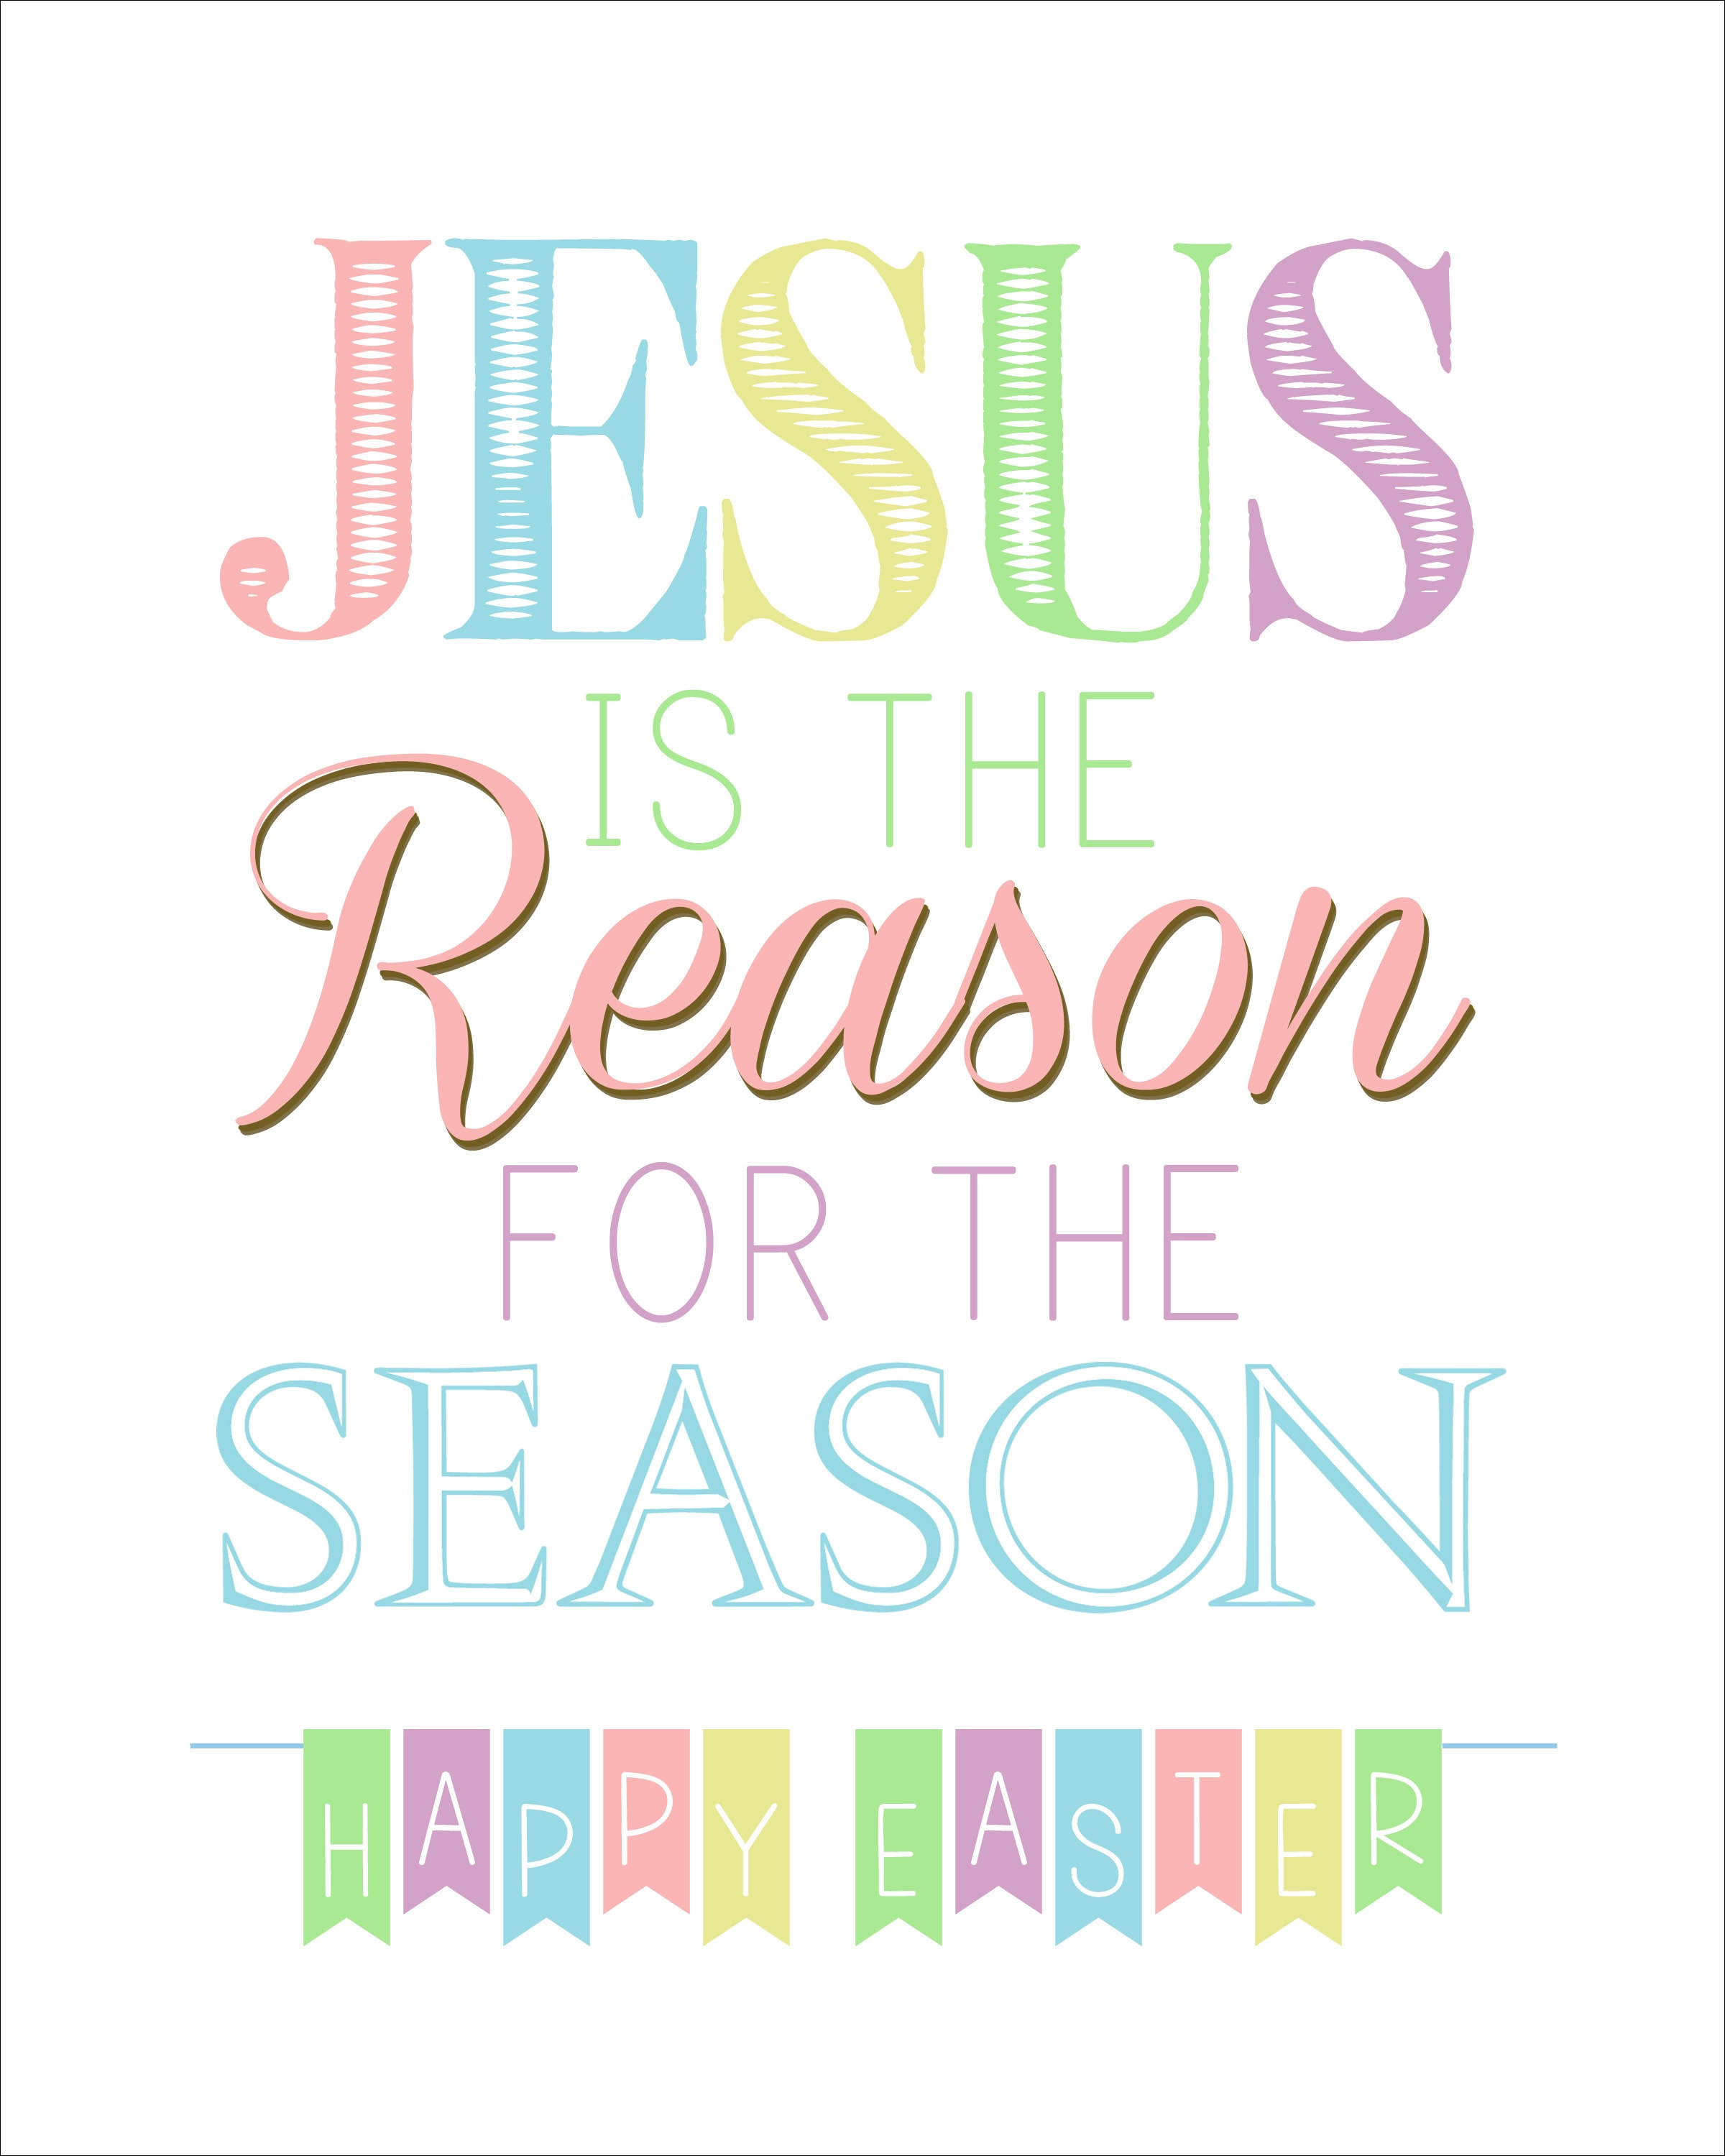 Jesus Is The Reason For The Season Free Easter Printable